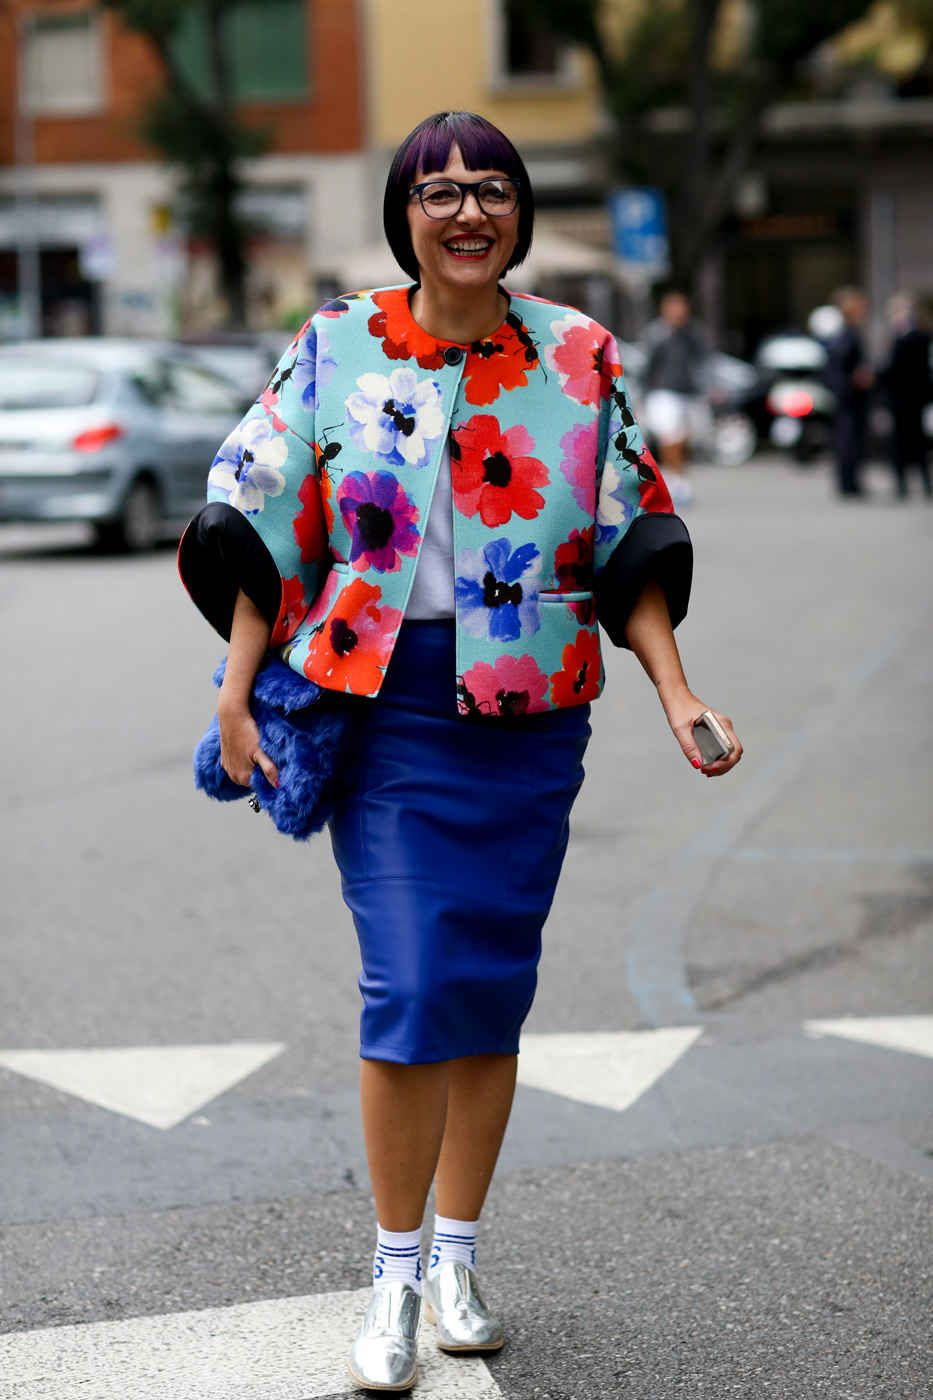 The Best Street Style From Milan Fashion Week - Fashionista